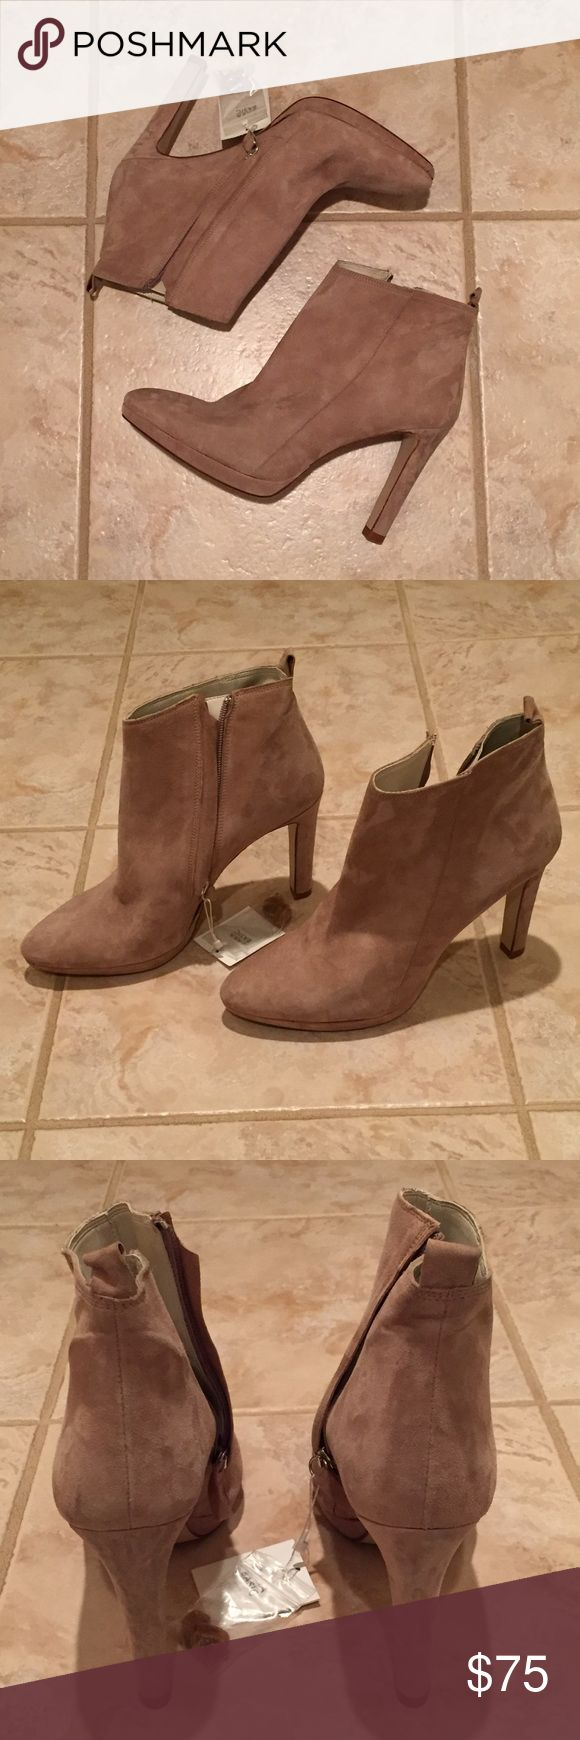 """Zara Suede Ankle Boots, NWT, Size 10 Whether it's paired with your favorite pair of jeans or with a dress, these are the perfect neutral ankle boots! True to size, better for a narrow size 10. Never worn! Heel measures approximately 4"""" Zara Shoes Ankle Boots & Booties"""